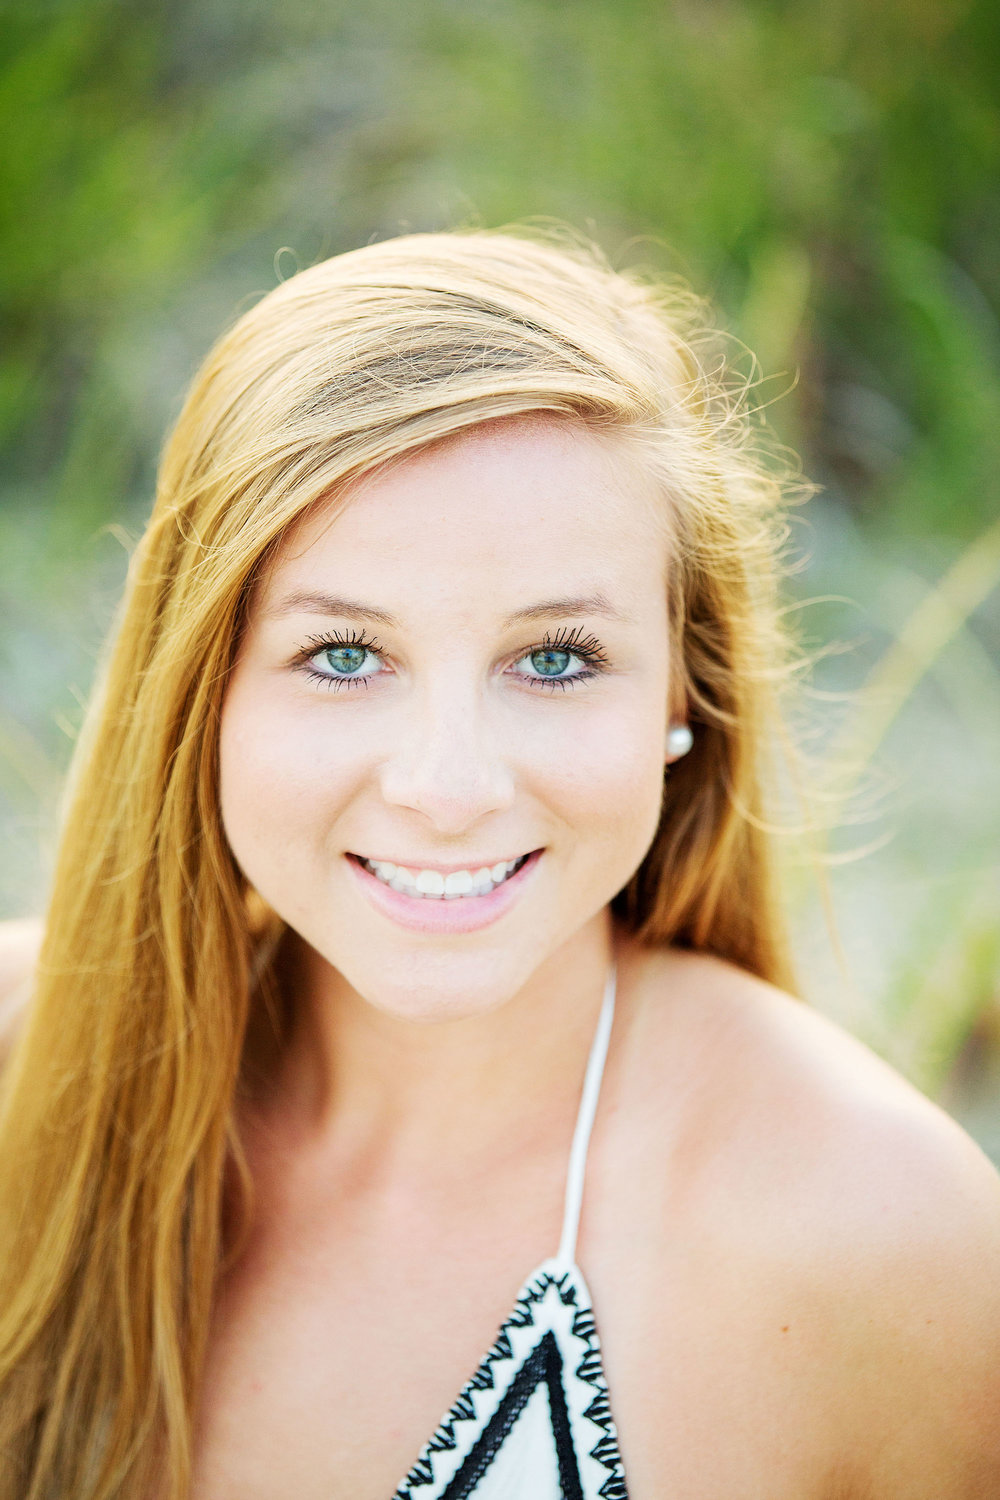 PeytonSeniorPortraits_AL-101 copy.jpg